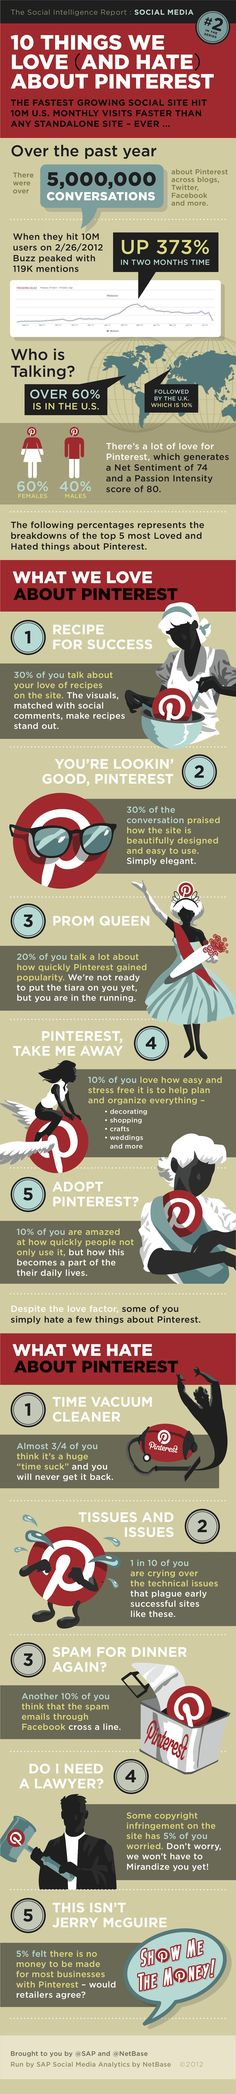 // 10 Things People Love and Hate About Pinterest